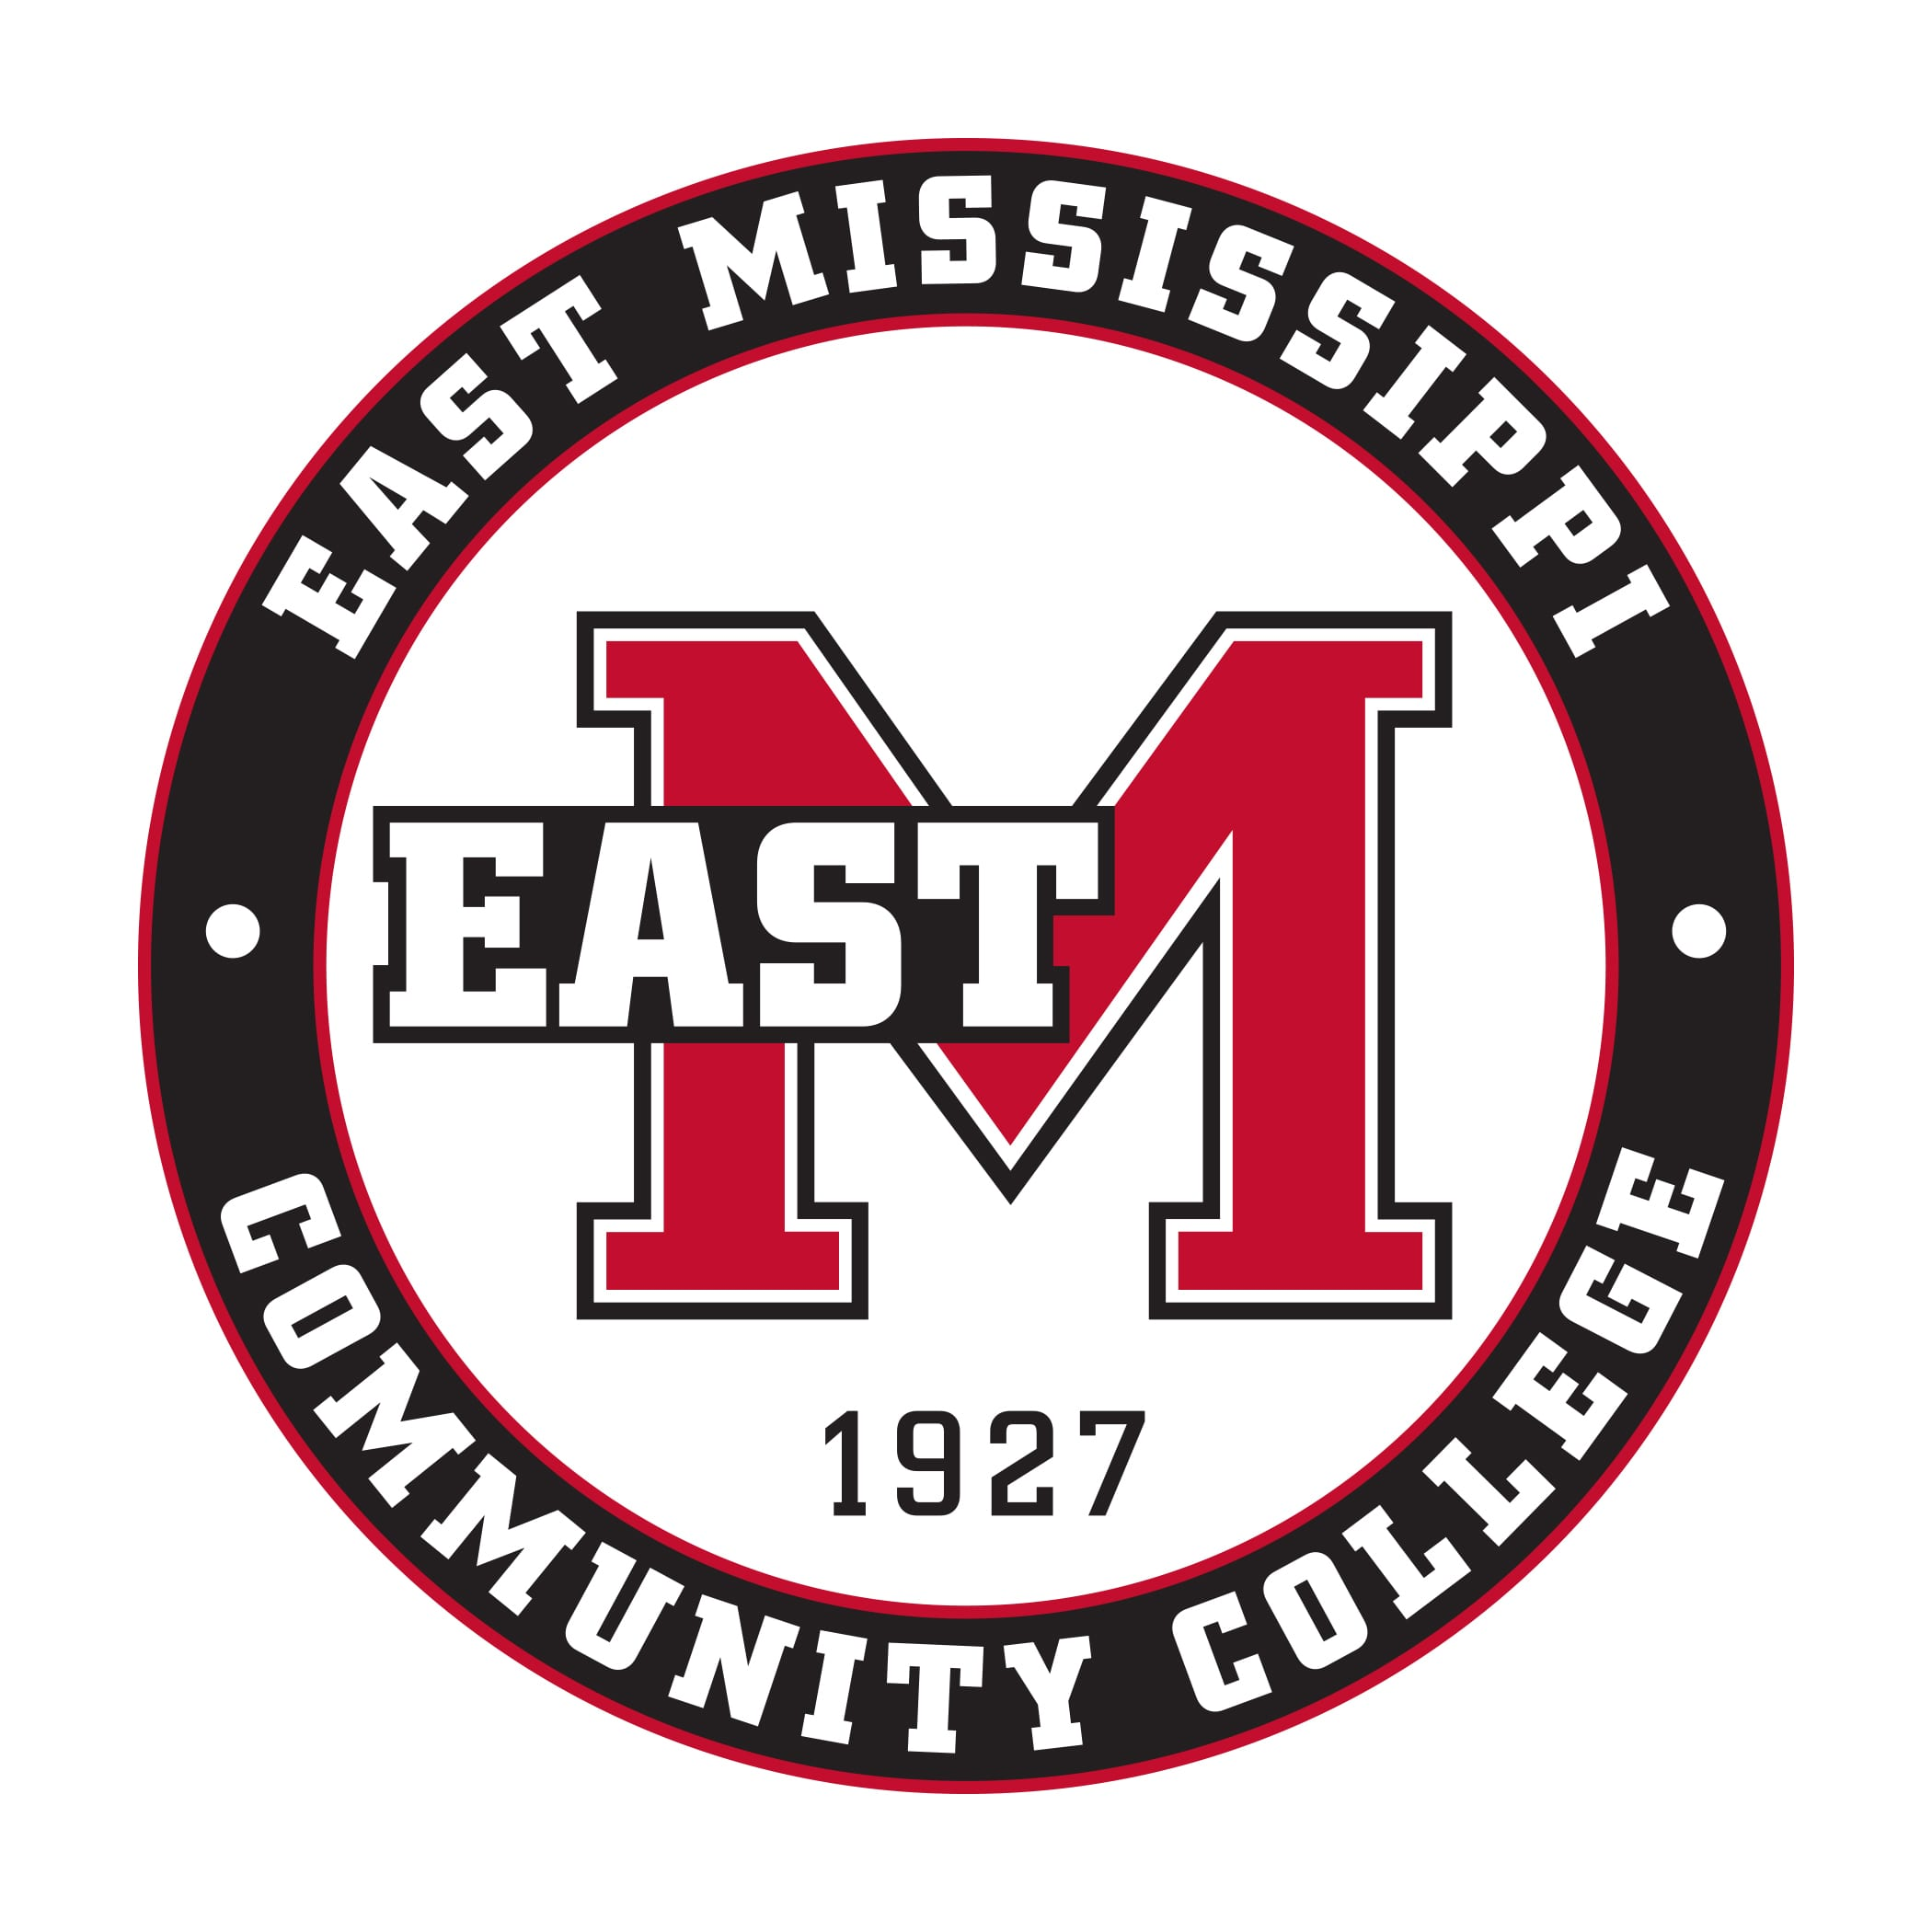 EAST Mississippi - fastest online associate degree programs